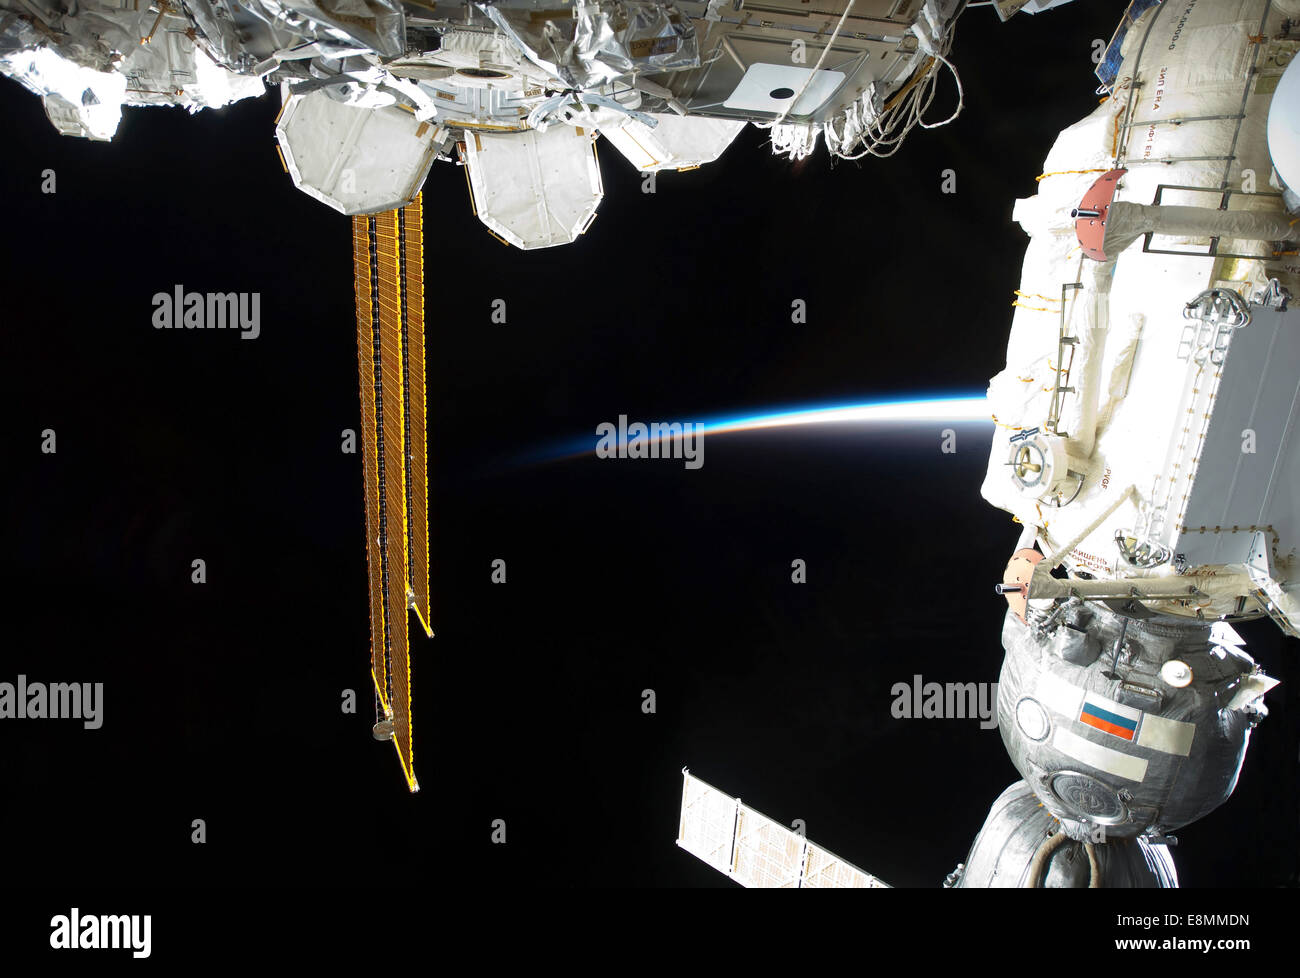 March 1, 2011 - View of a docked Russian Soyuz spacecraft (right), a portion of the International Space Station's - Stock Image